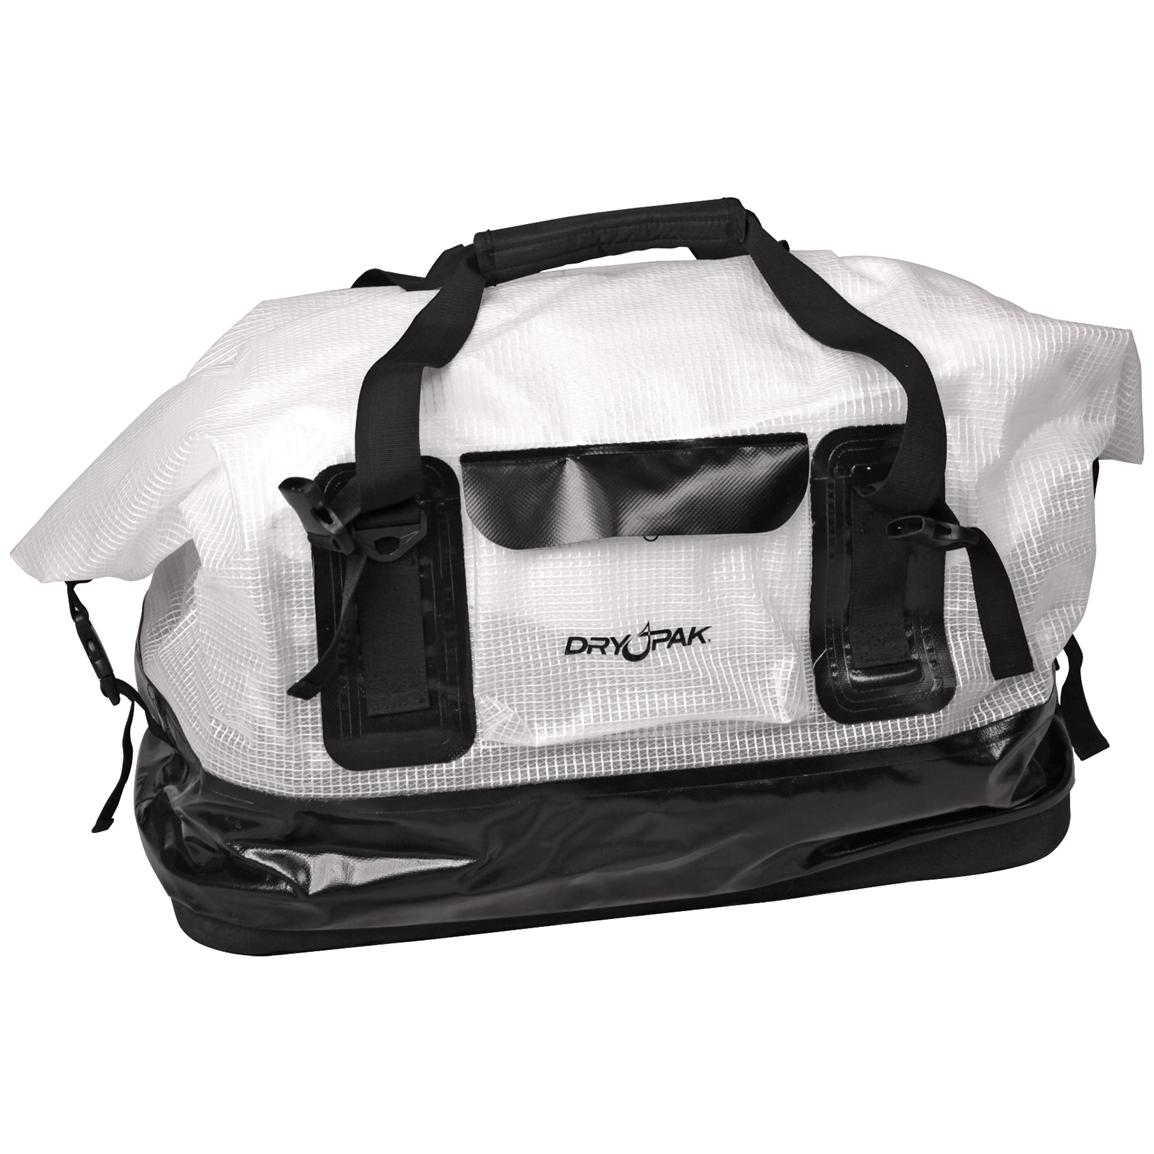 Dry Pak Waterproof Roll-top Duffel Bag, Clear